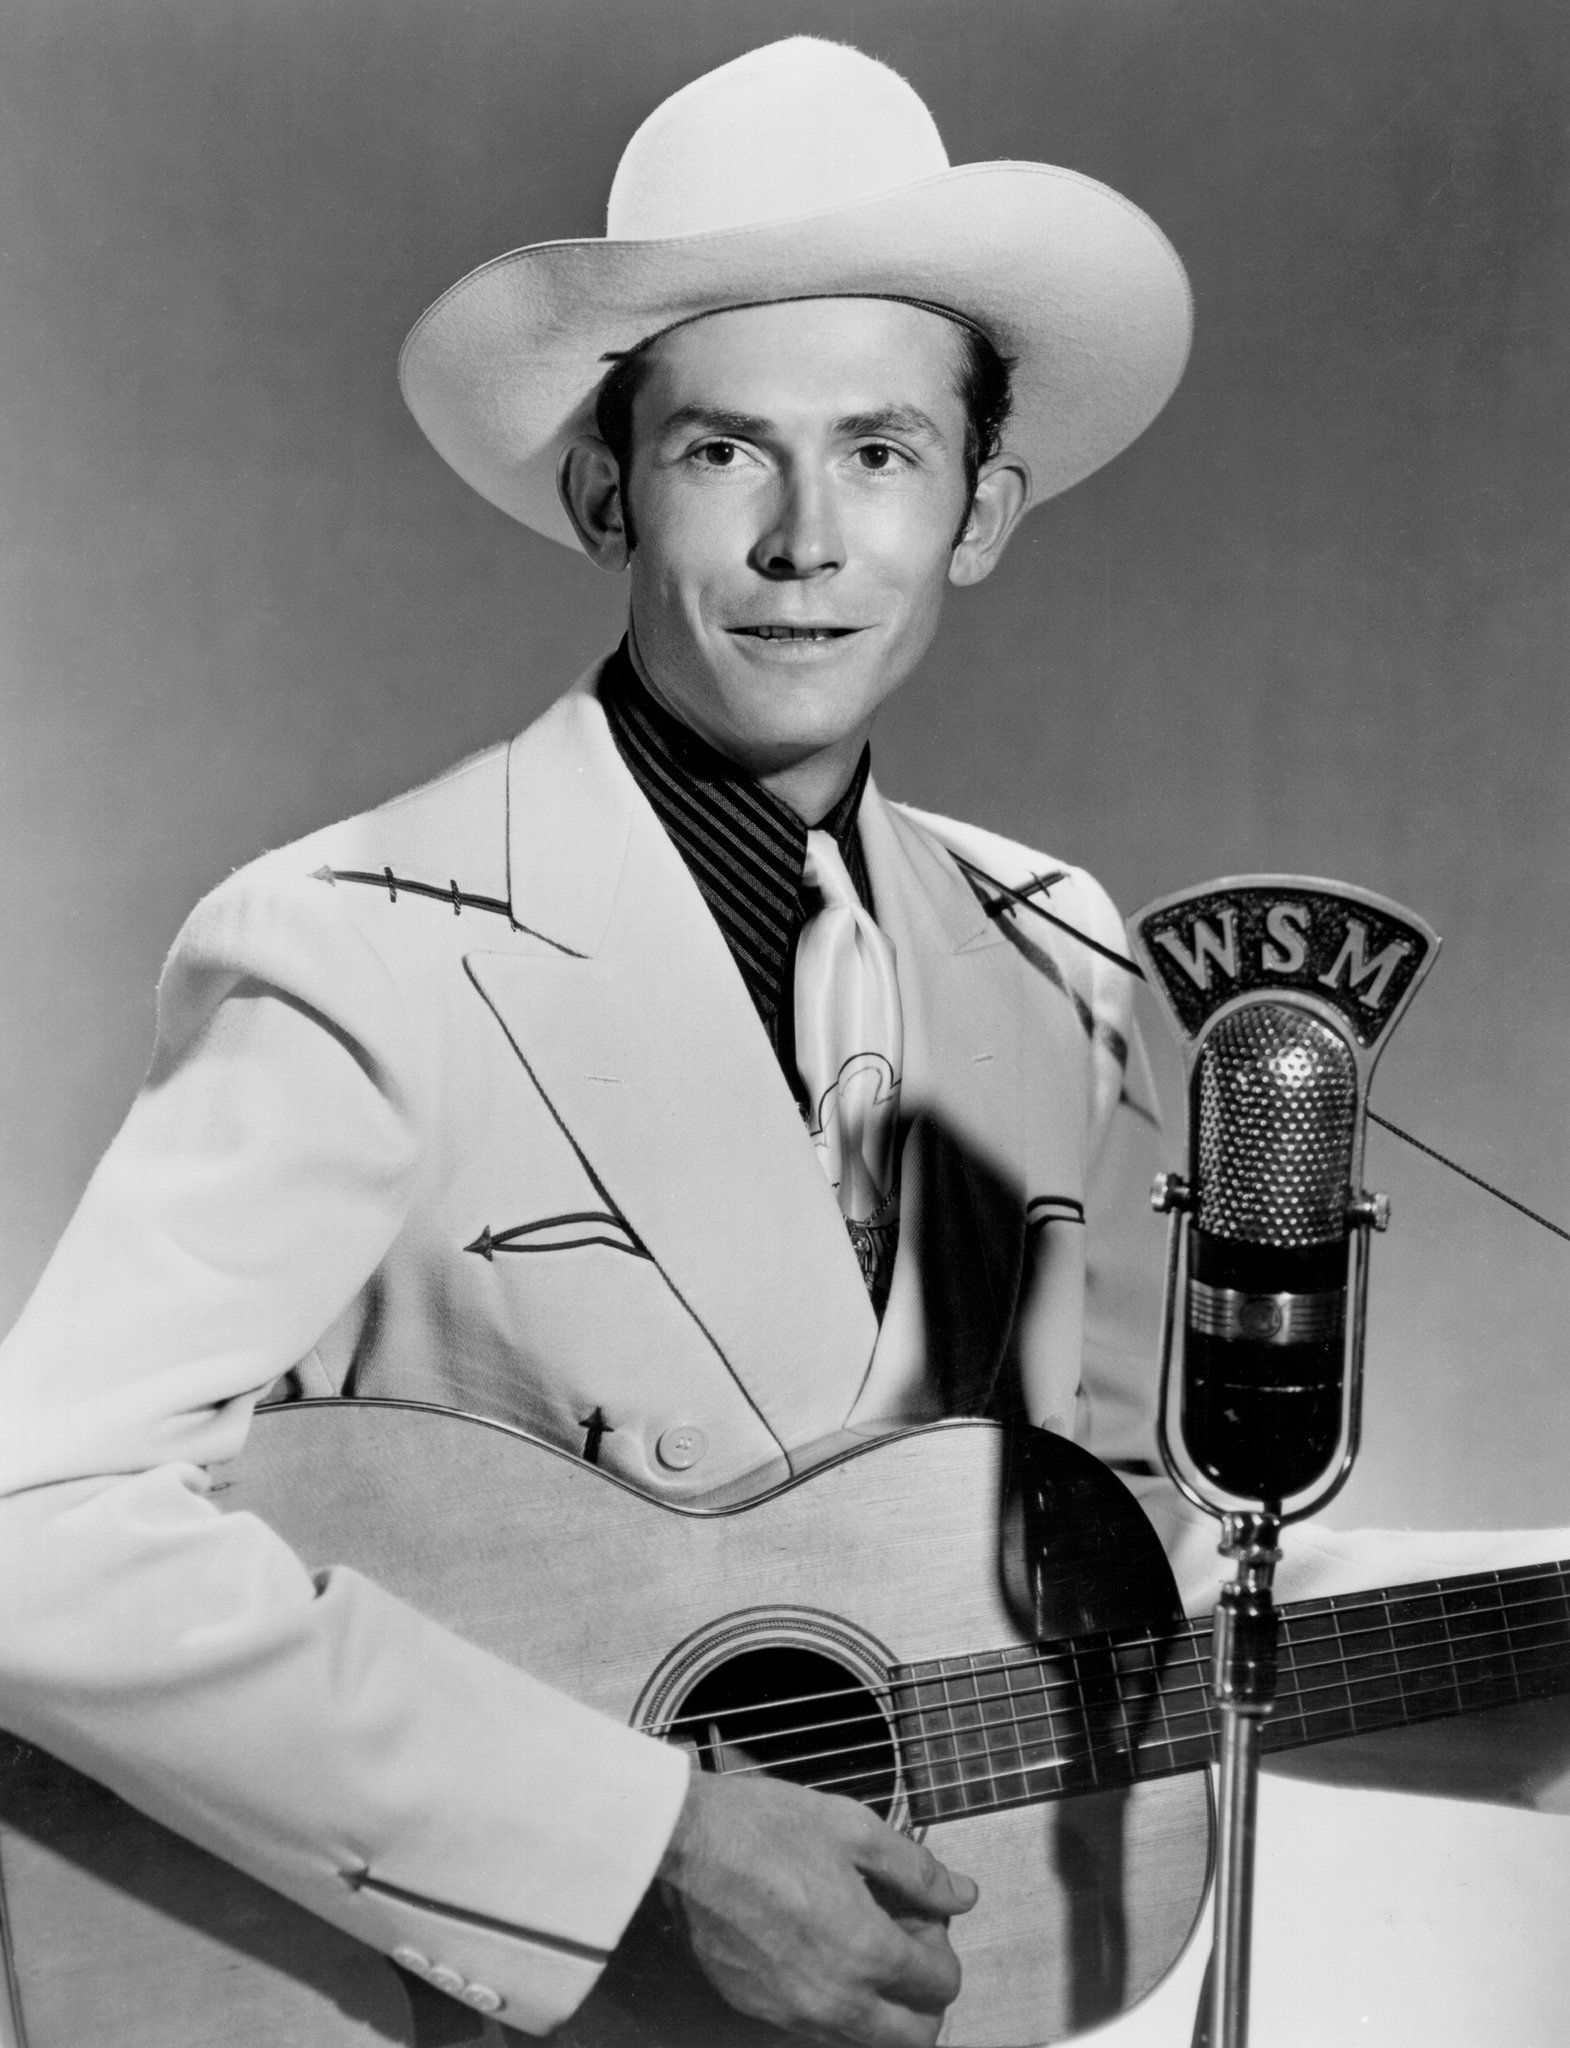 Hank Williams 1951.